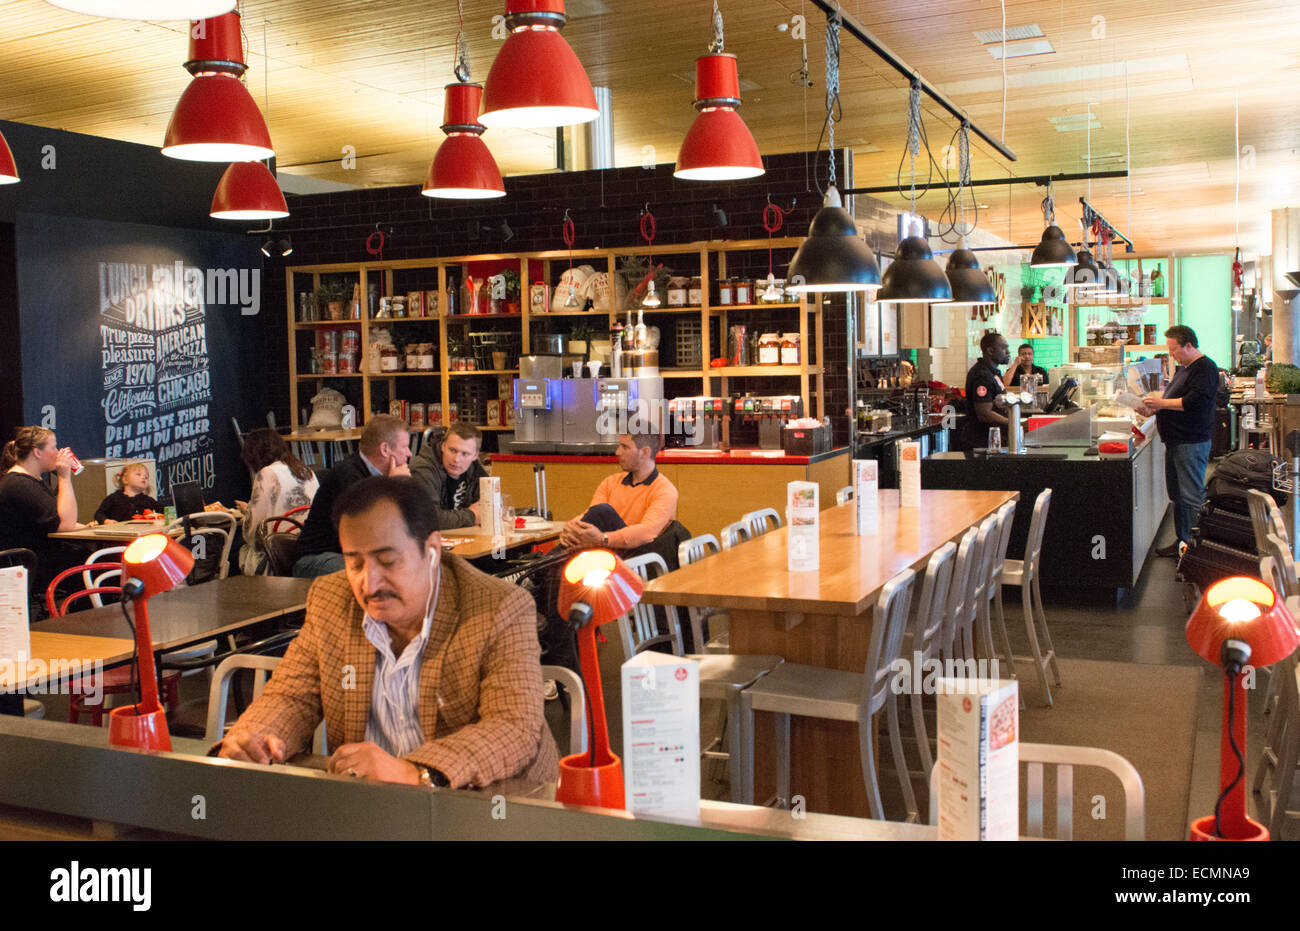 Oslo Norway Peppes Pizza a modern pizza restaurant with WiFi and customers dining - Stock Image